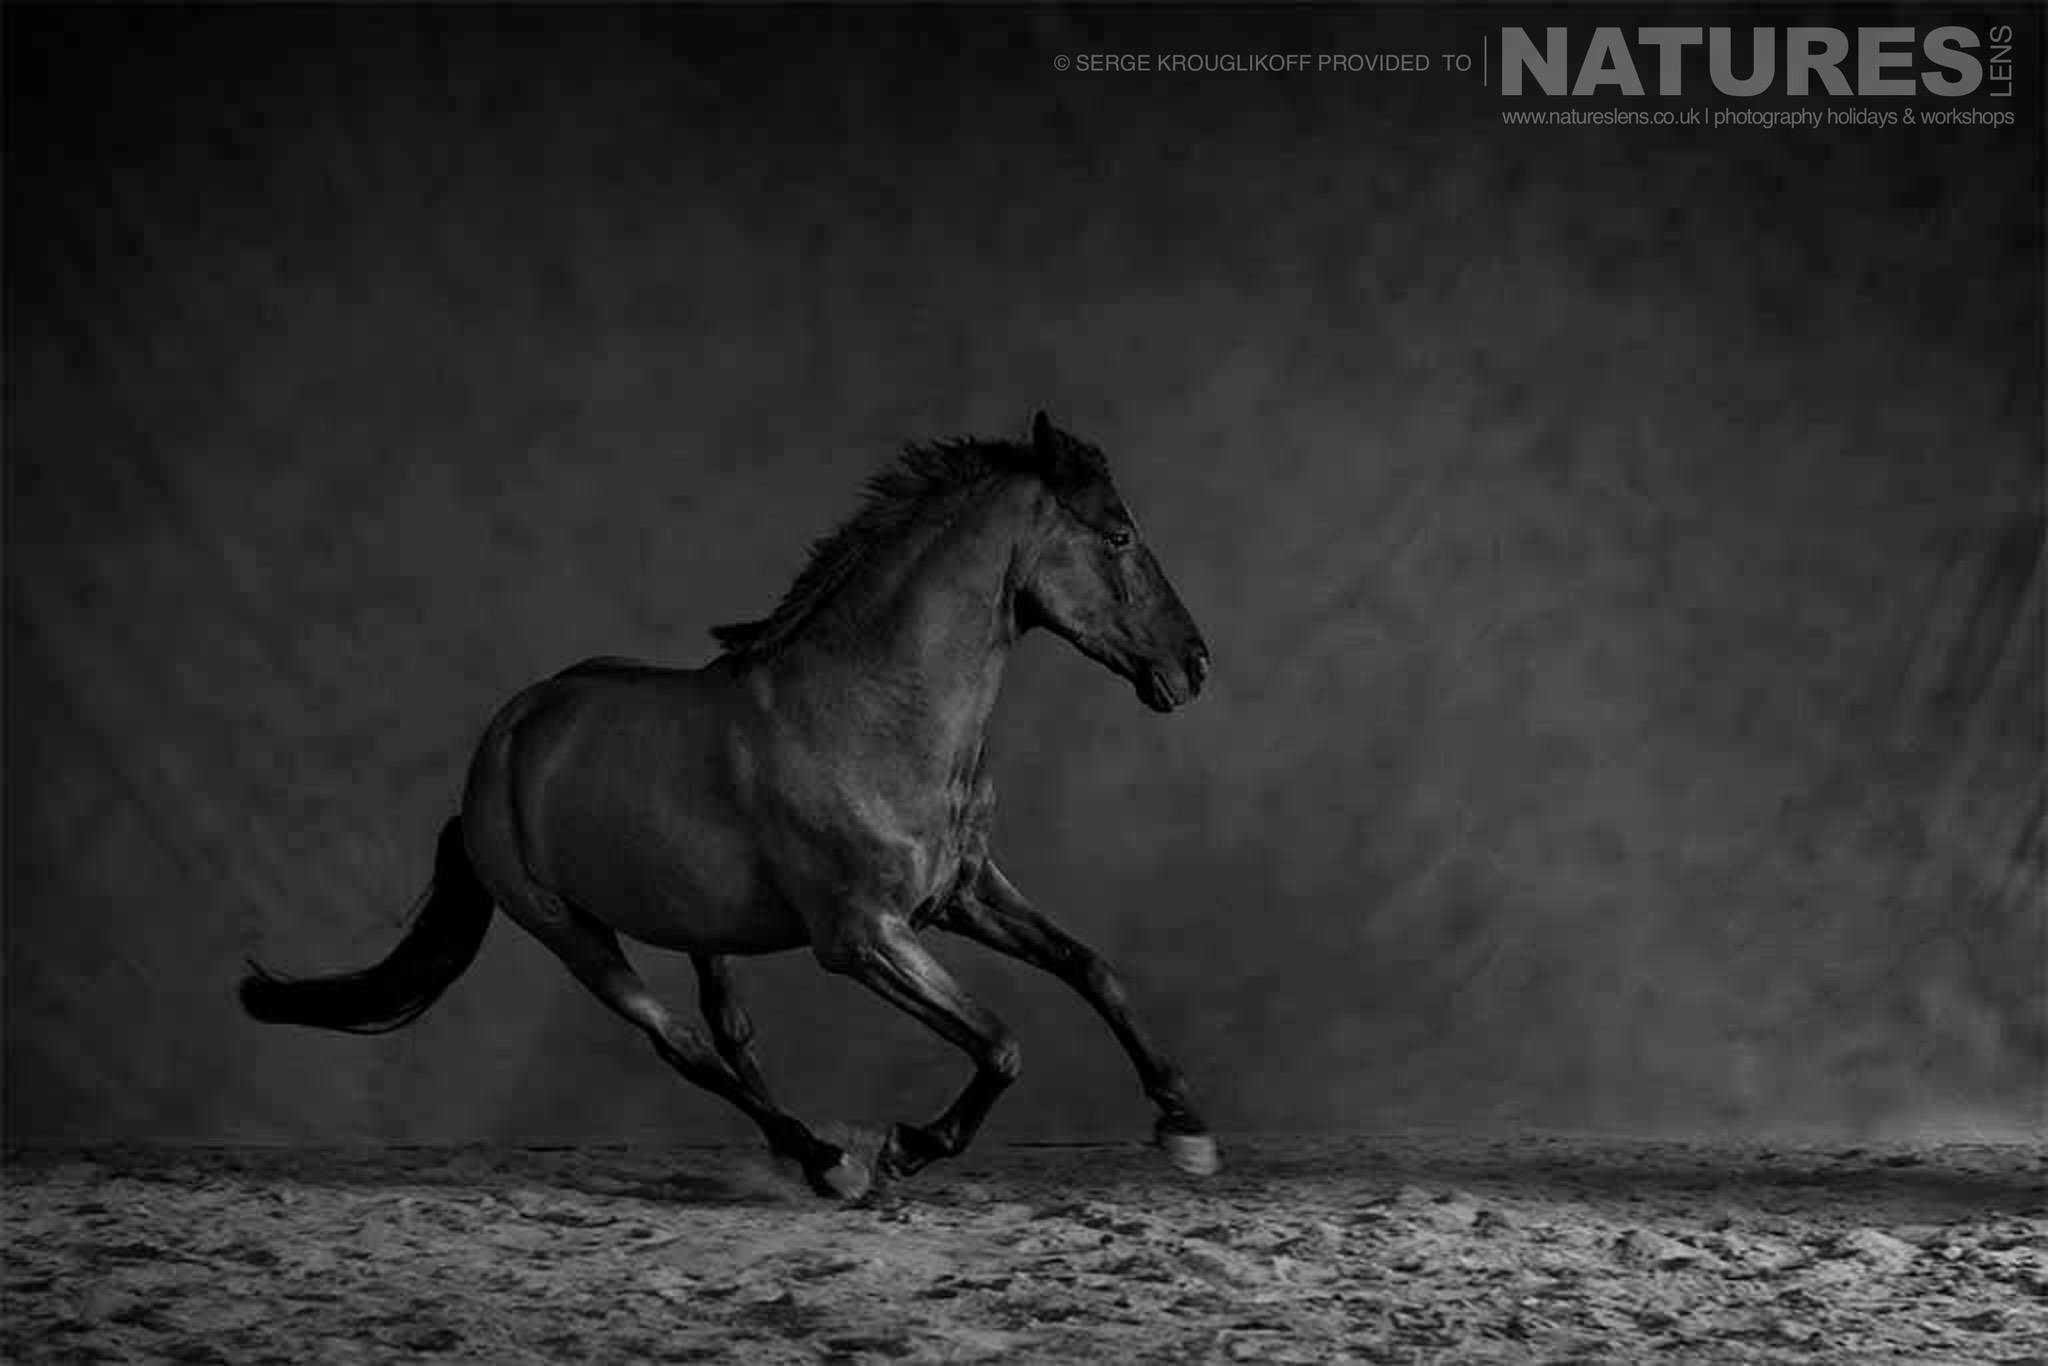 A black stallion canters in an arena during a special portrait session typical of the type of image that may be captured during the NaturesLens Wild White Horses of the Camargue Photography Holiday